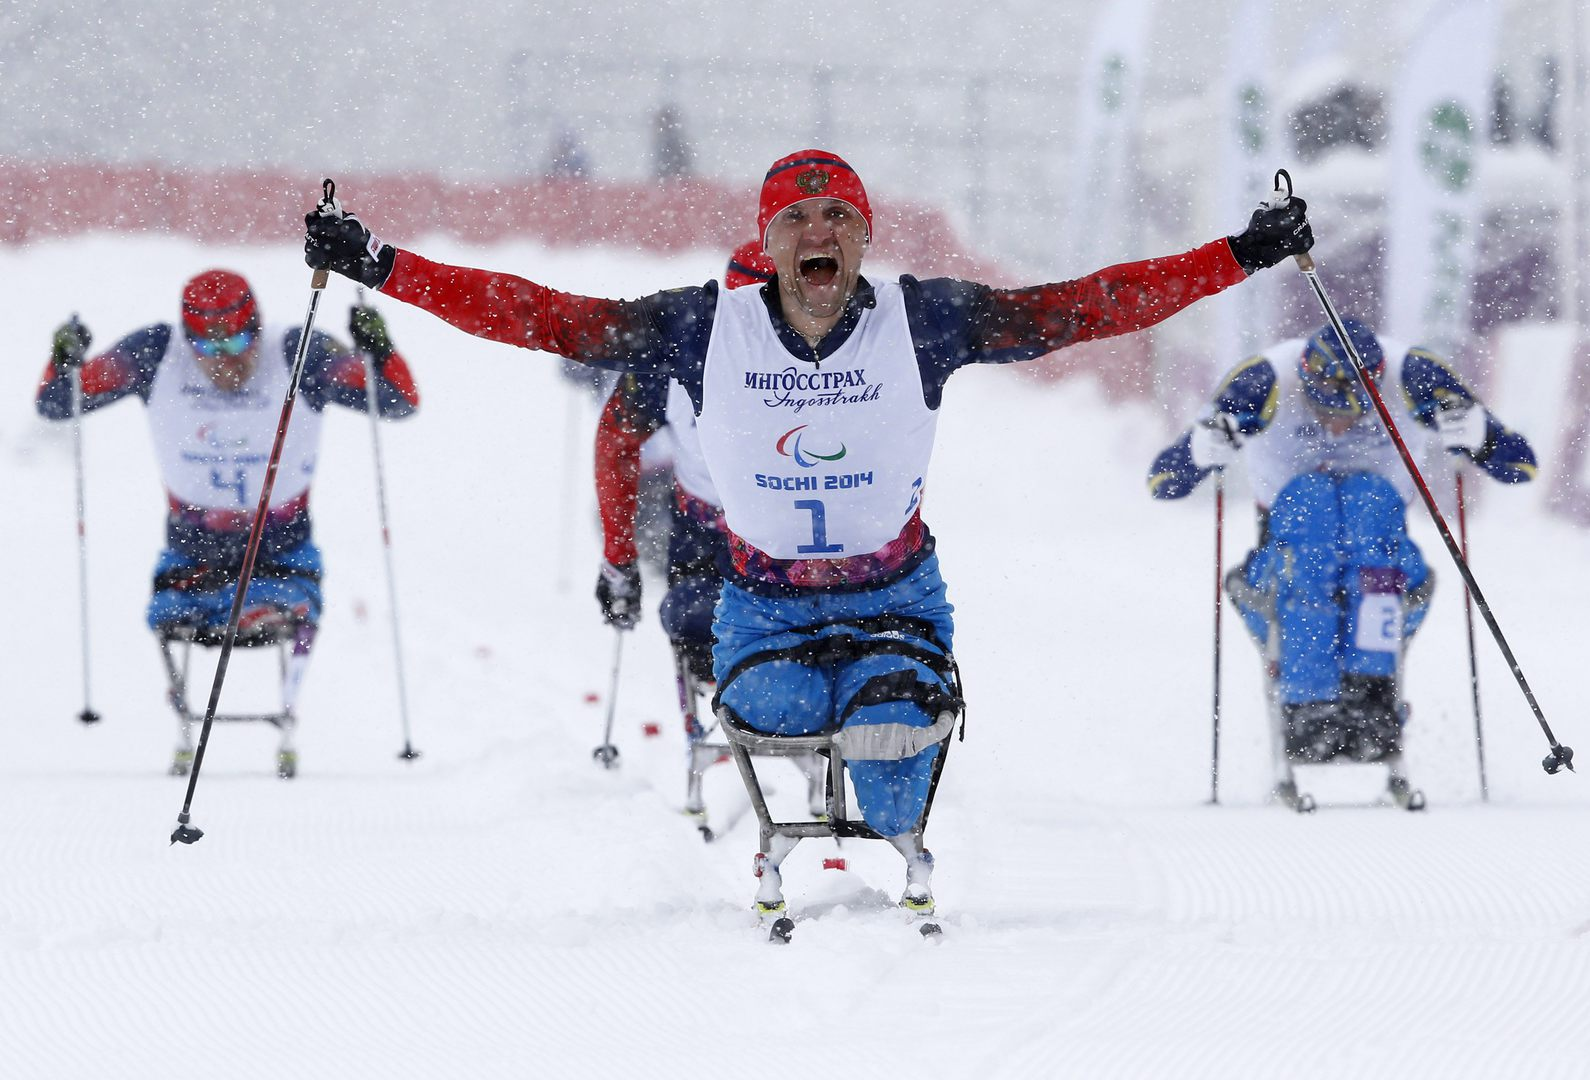 Russia's Roman Petushkov celebrates his gold medal during the men's 1 km sprint cross-country sitting at the 2014 Sochi Paralympic Winter Games in Rosa Khutor, March 12, 2014. REUTERS/Alexander Demianchuk (RUSSIA - Tags: SPORT SKIING OLYMPICS TPX IMAGES OF THE DAY)